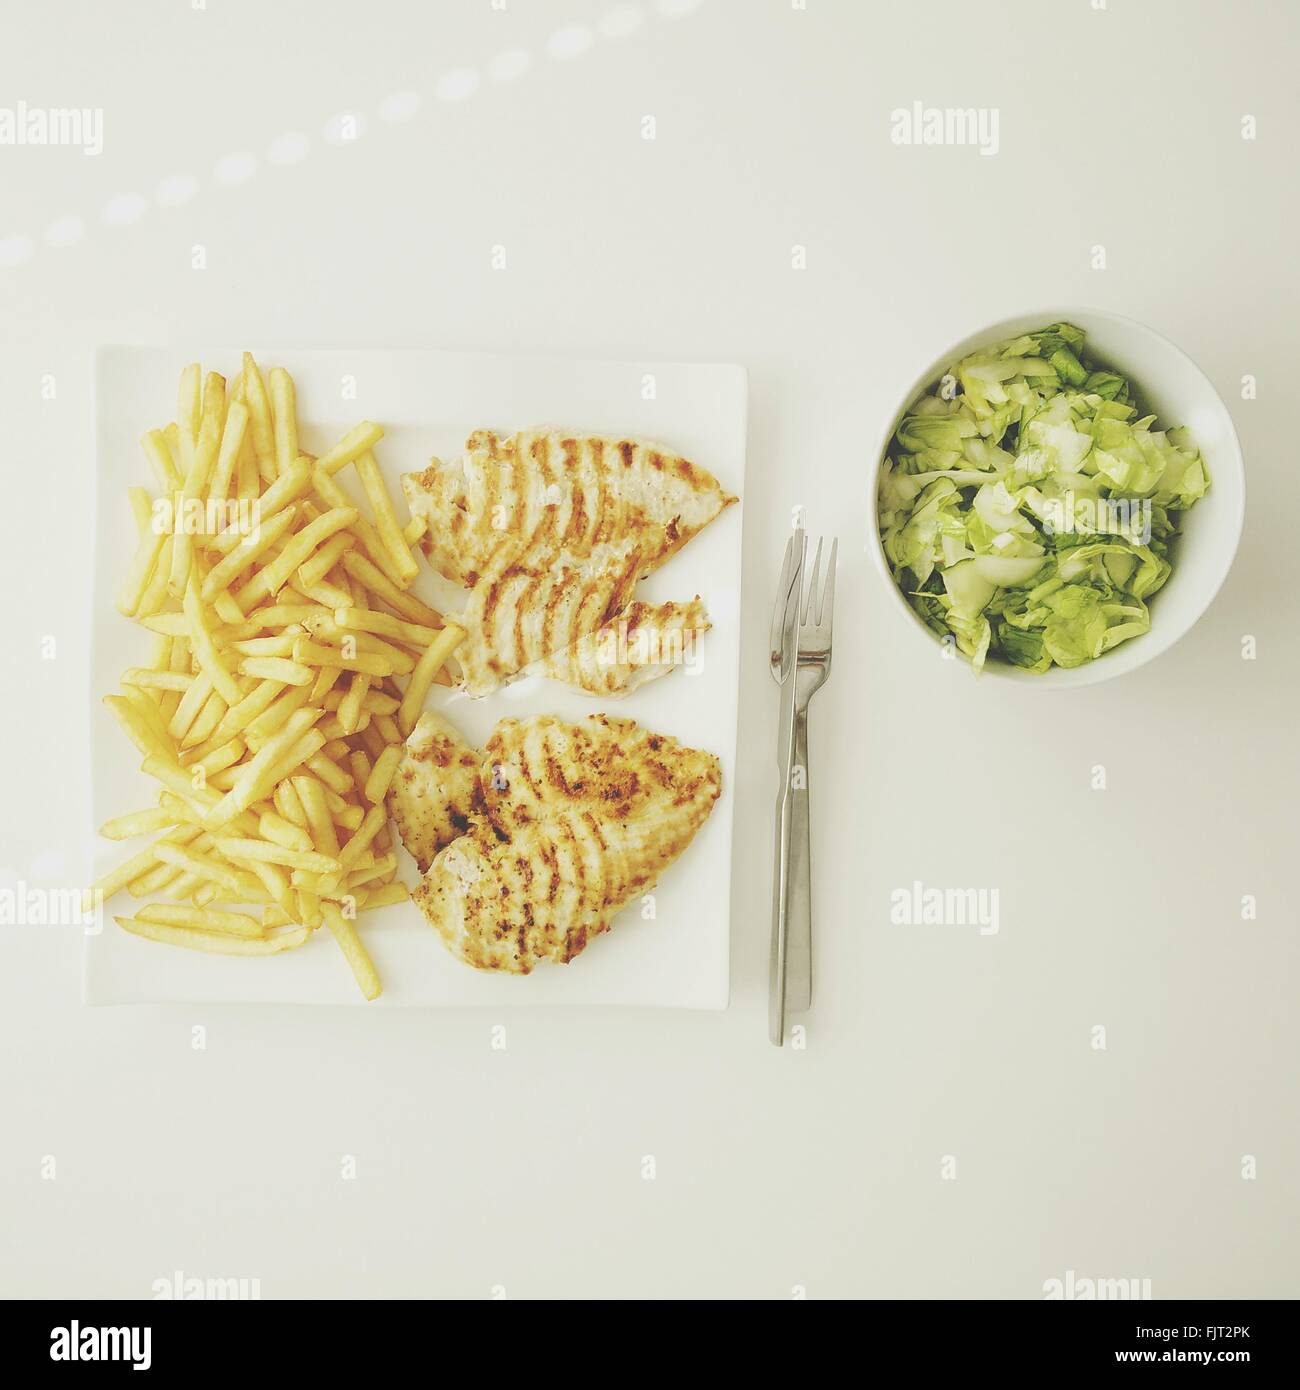 Directly Above View Of French Fries And Meat With Lettuce Against White Background - Stock Image